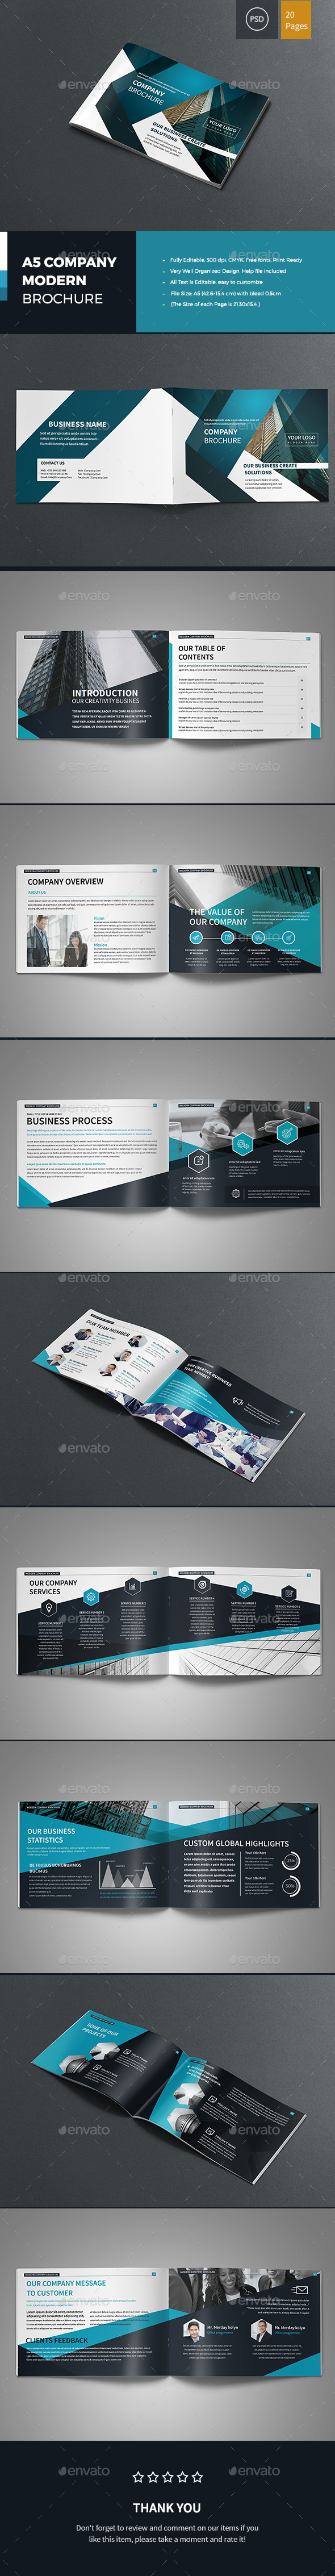 A5 Company Modern Brochure - Corporate Brochures